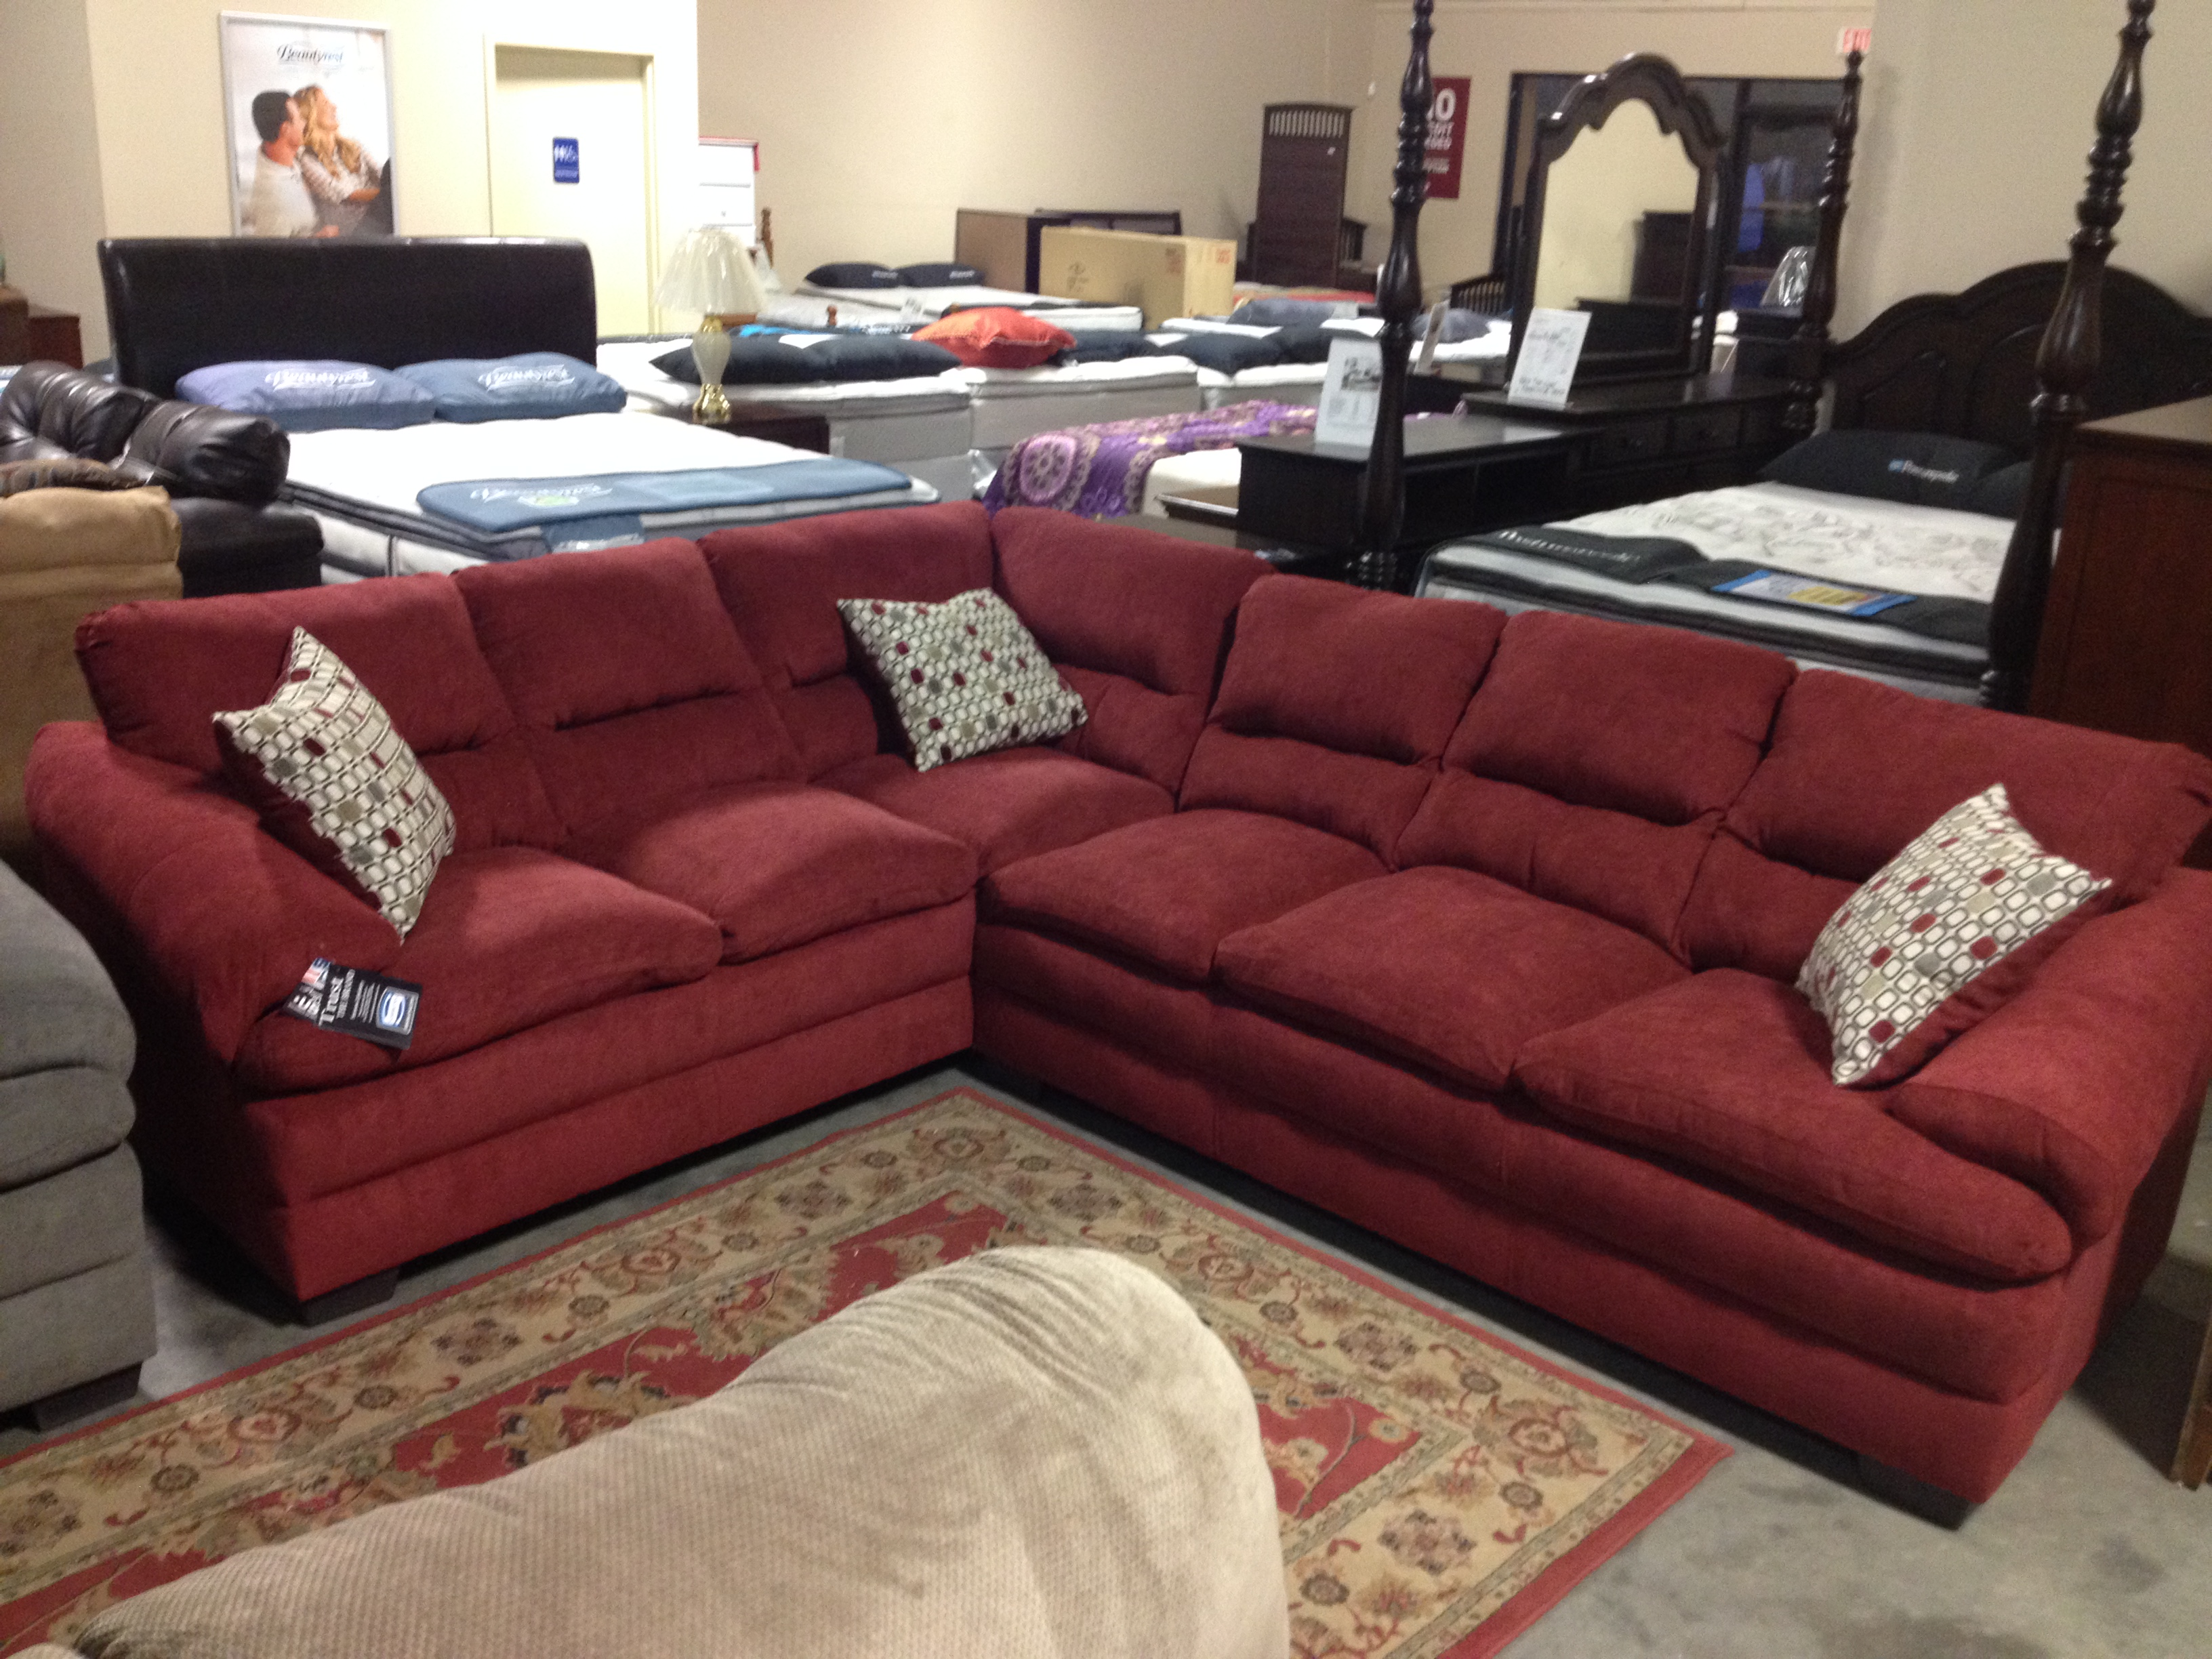 Living Room Knit Umber Sofa Love Seat 899